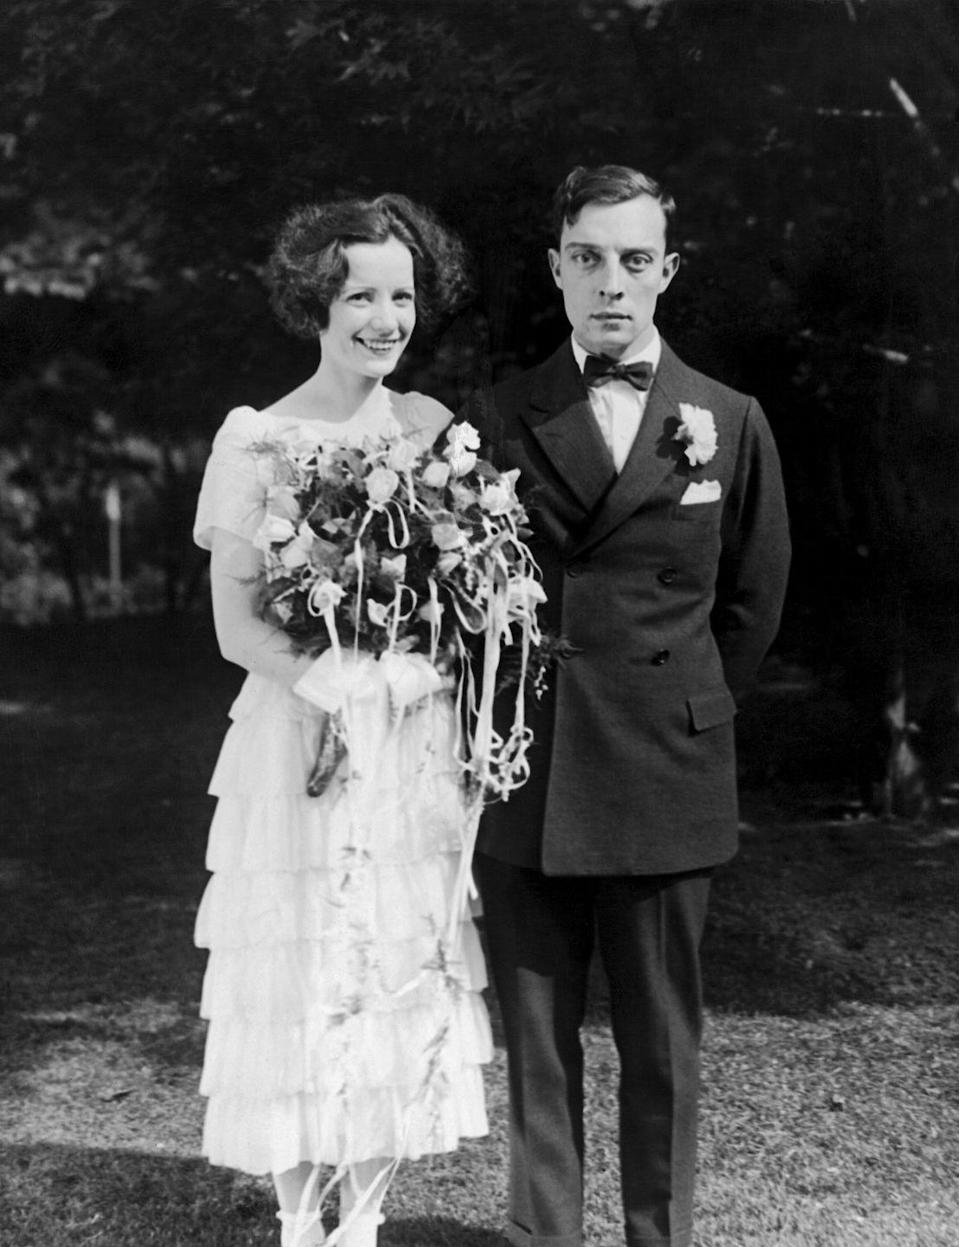 <p>Silent-film actor and director Buster Keaton married his first wife, Natalie Talmadge, on May 31. She had acted alongside him in <em>Our Hospitality</em>, a silent film he also had directed. The couple divorced in 1932, and Keaton went on to marry twice more.</p>